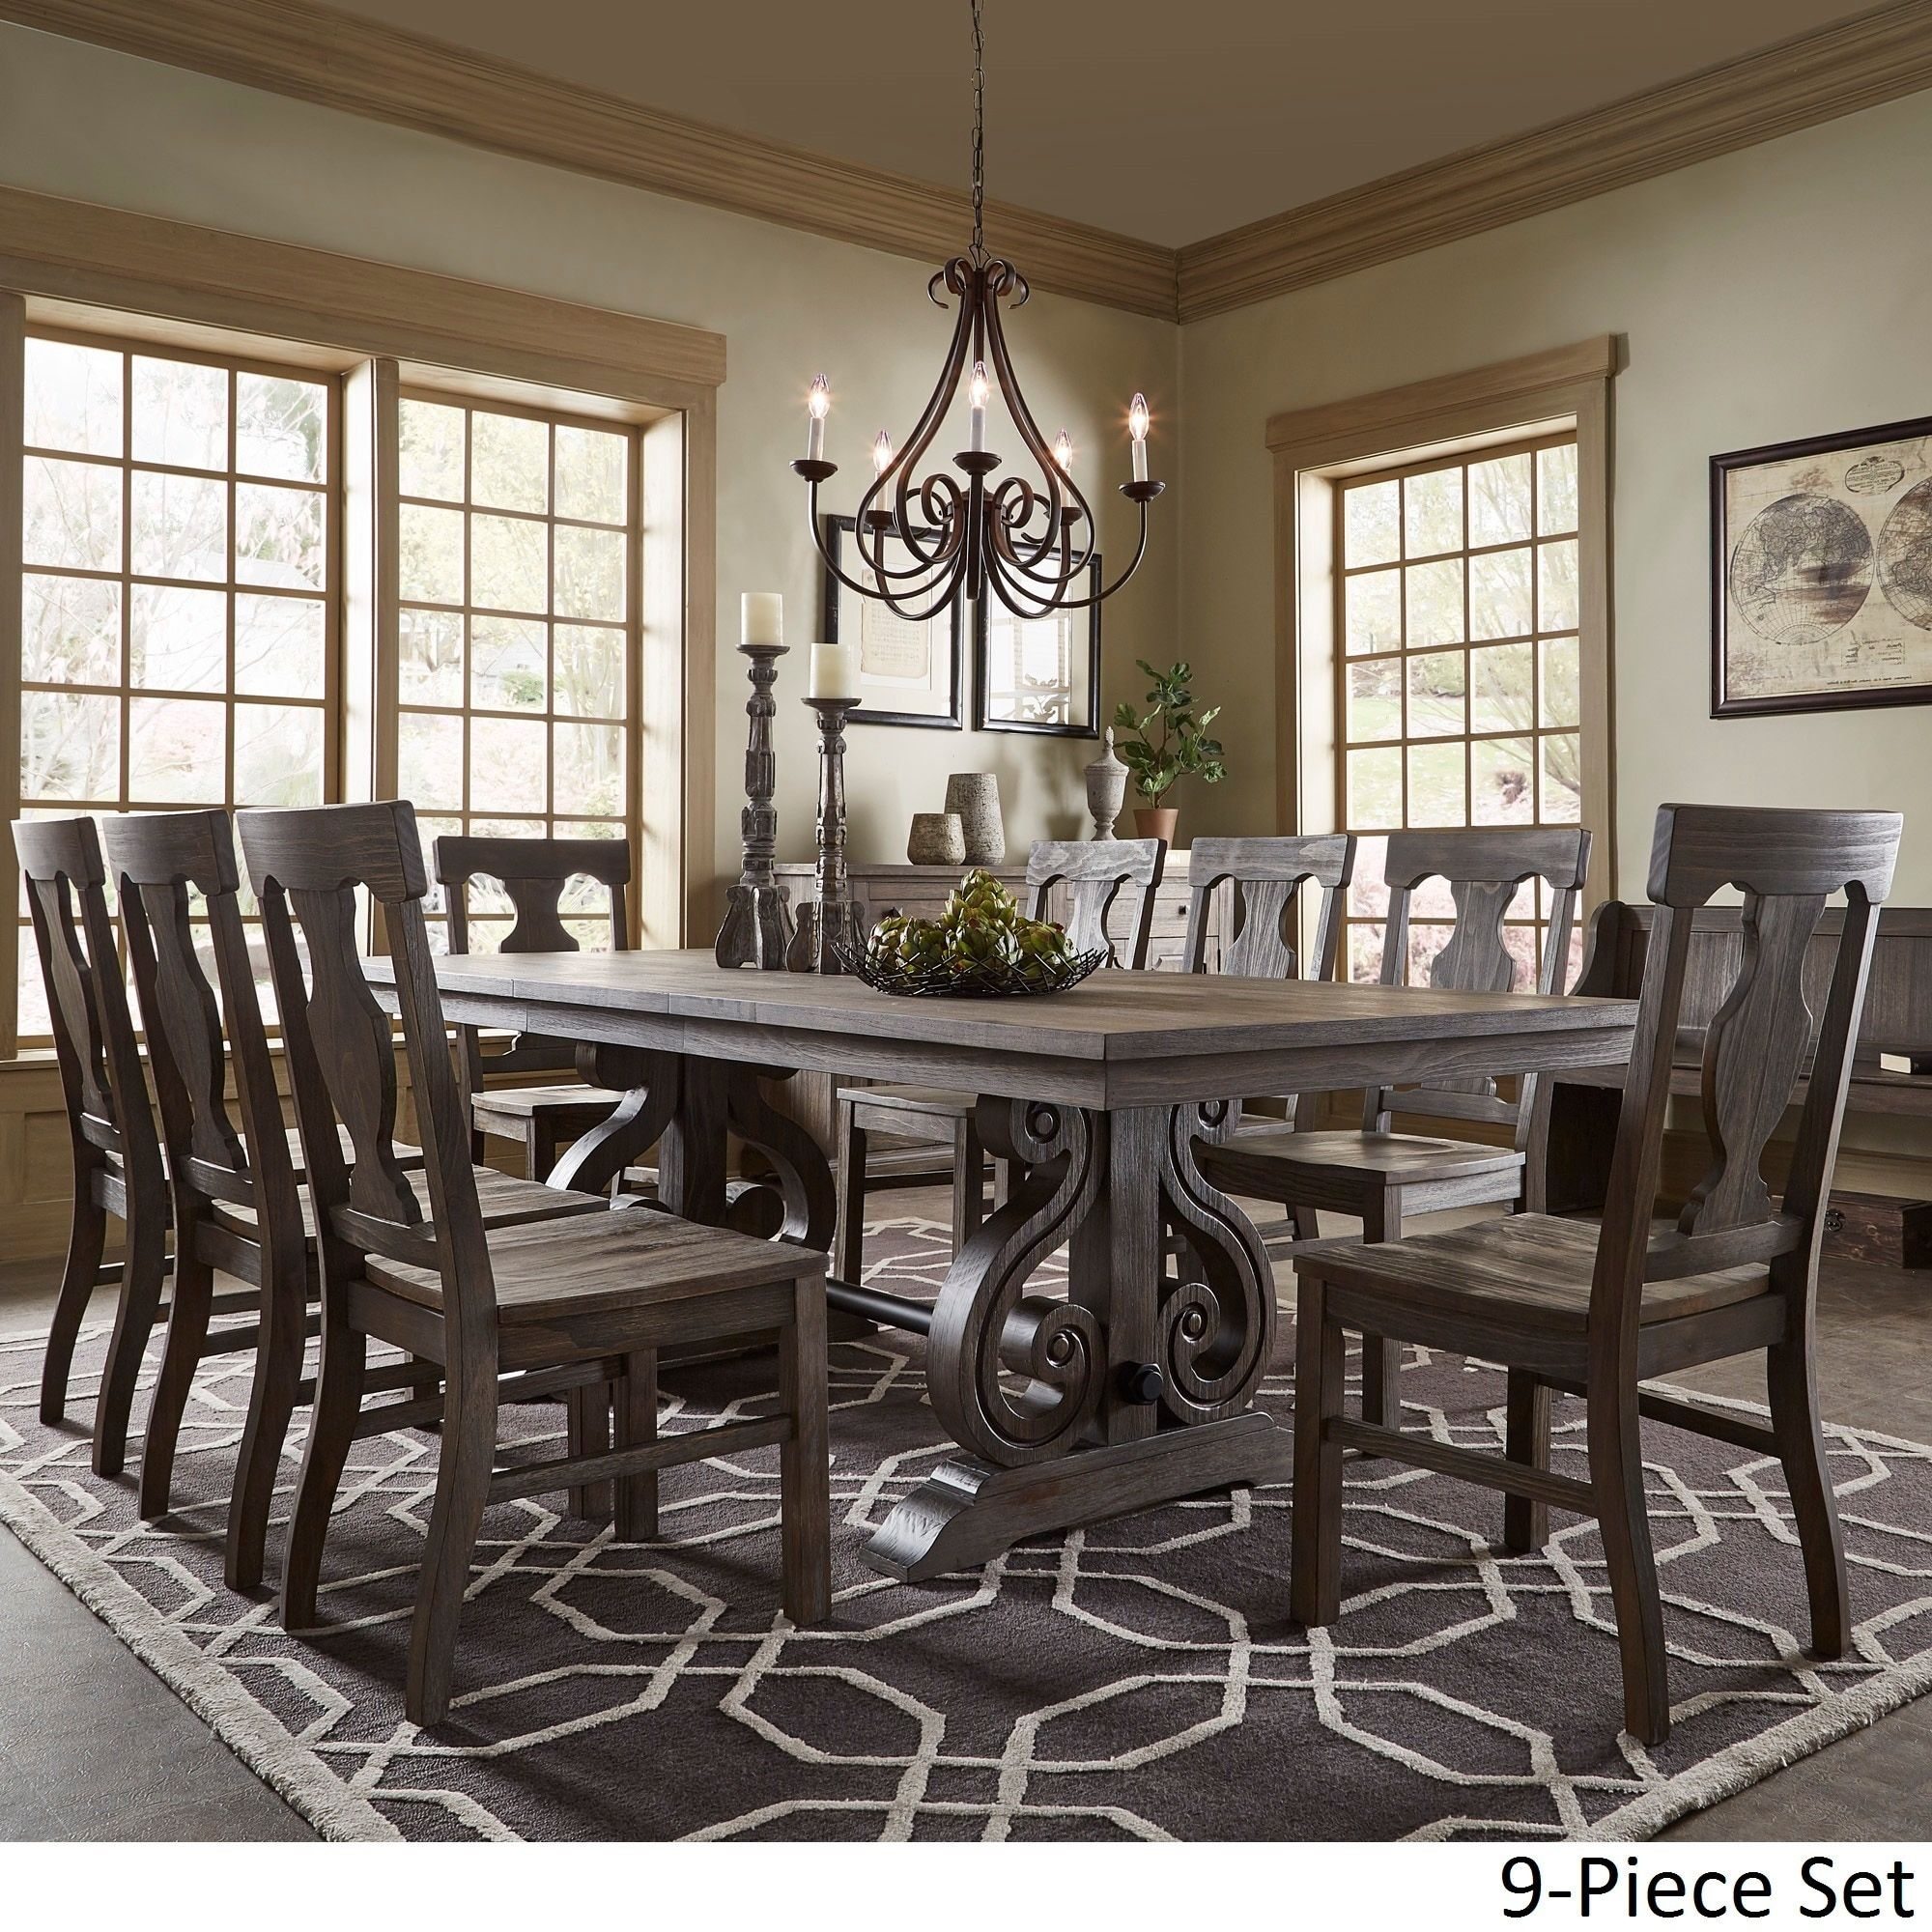 Dining Table Set Deals: Rowyn Wood Extending Dining Table Set By SIGNAL HILLS